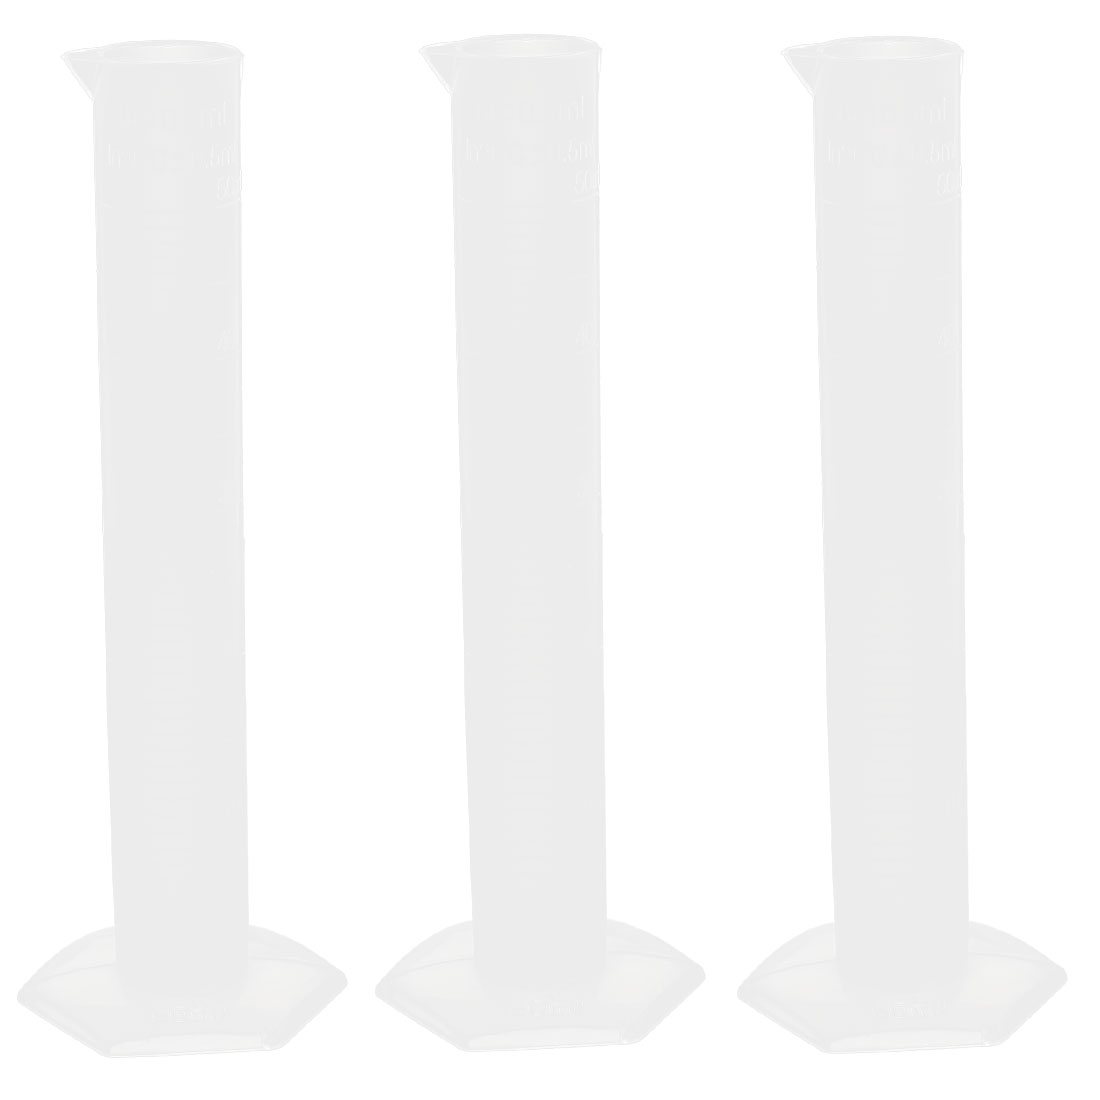 Laboratory Test 50ml Clear White Plastic Graduated Cylinder Measuring Cup 3 Pcs